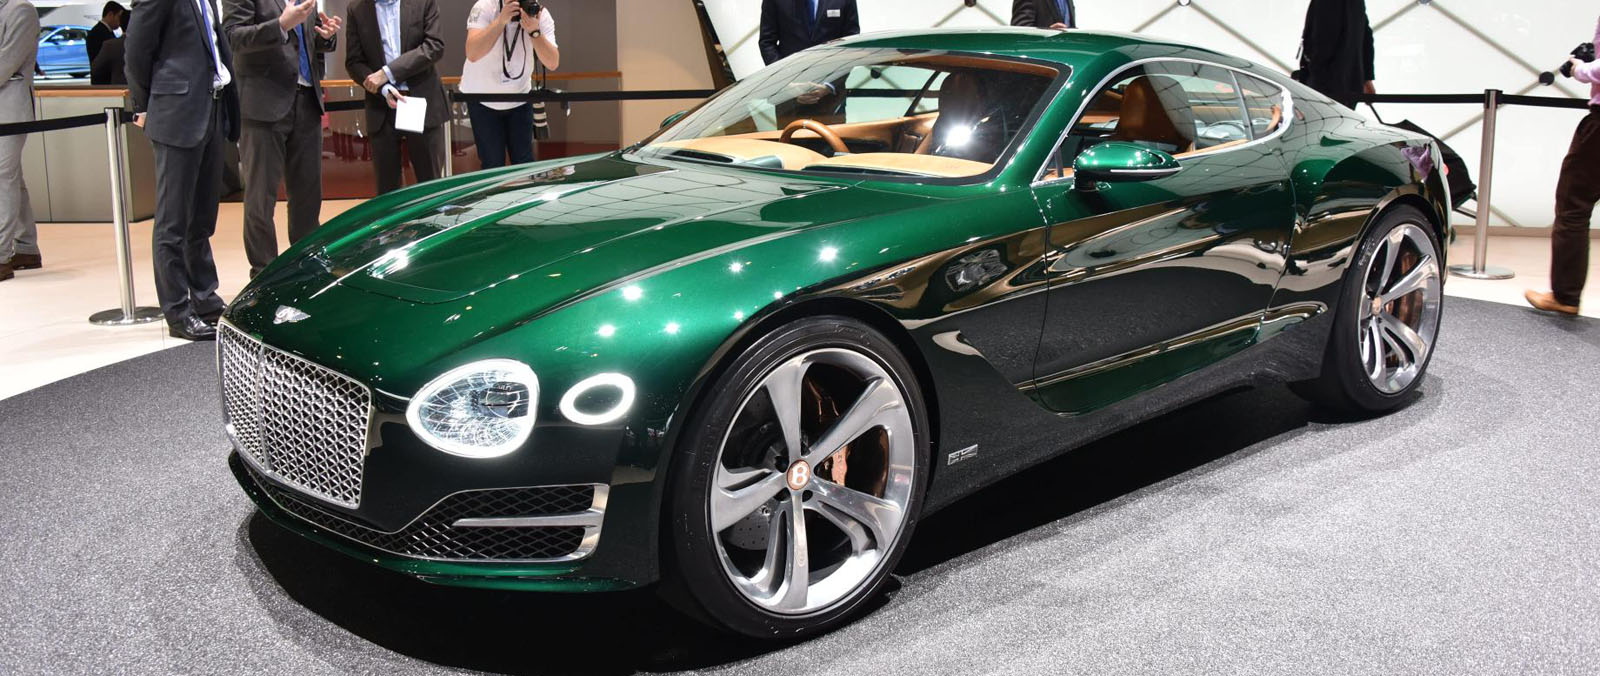 Bentley en Borgward op de Autosalon van Geneve 2015